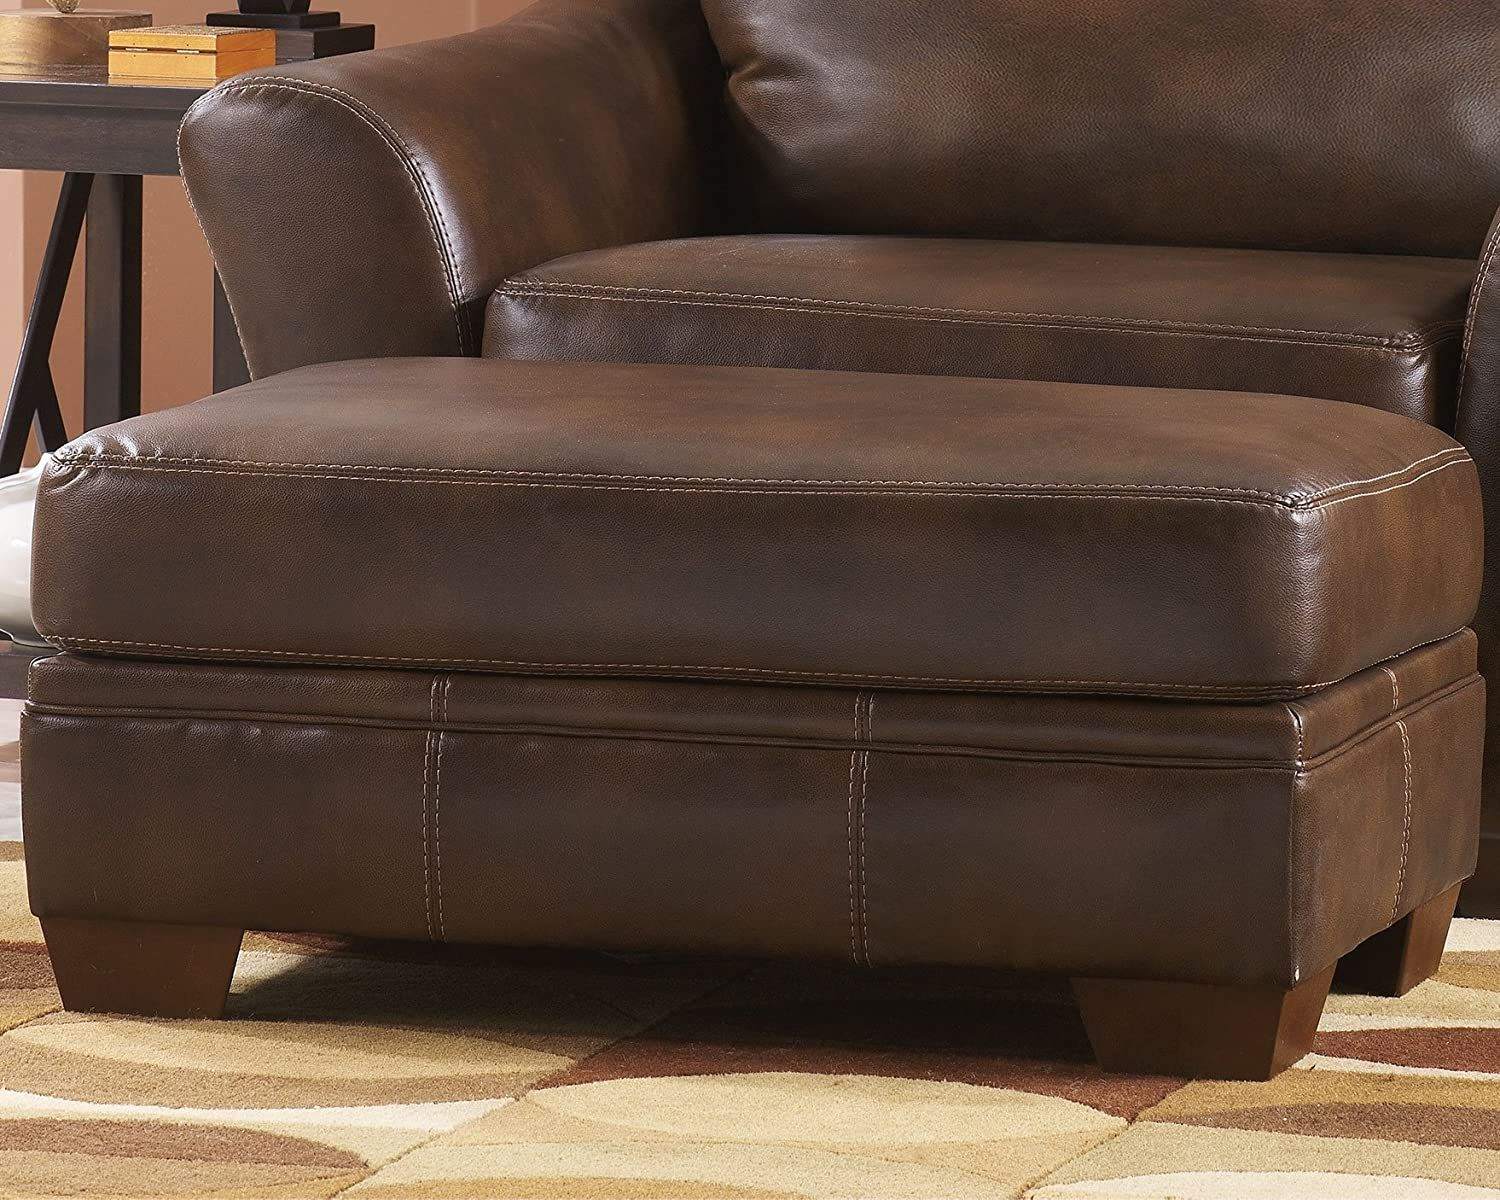 Signature Design By Ashley Sedona Faux Leather Ottoman Brown Home Kitchen Furniture Accent Furniture Faux Leather Ottoman Ottoman Leather Ottoman [ 1200 x 1500 Pixel ]